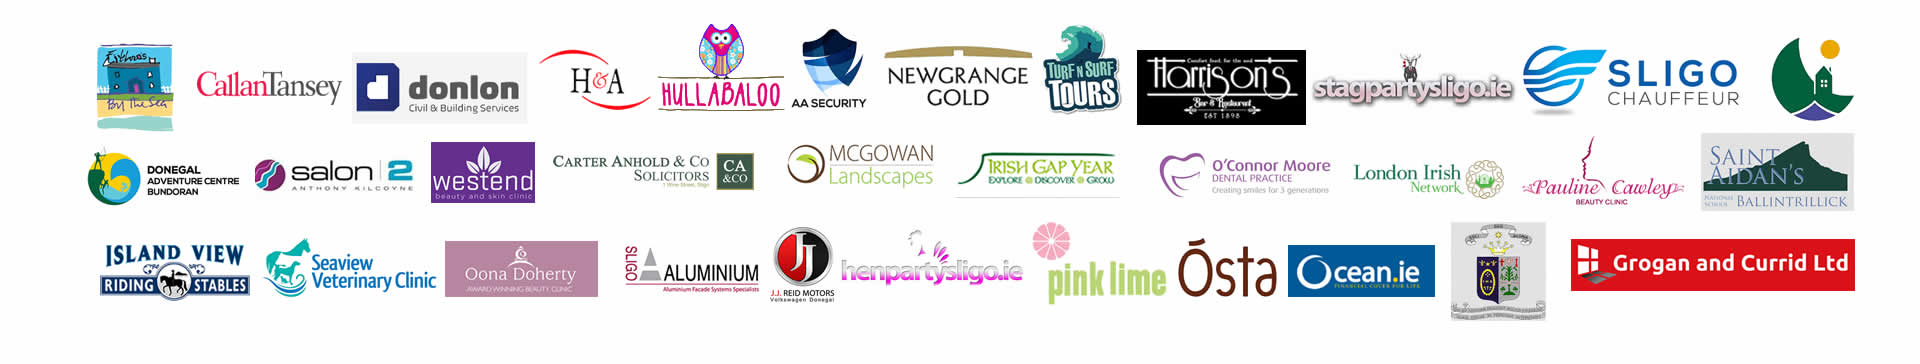 FAQs with logos of current clients of Format.ie